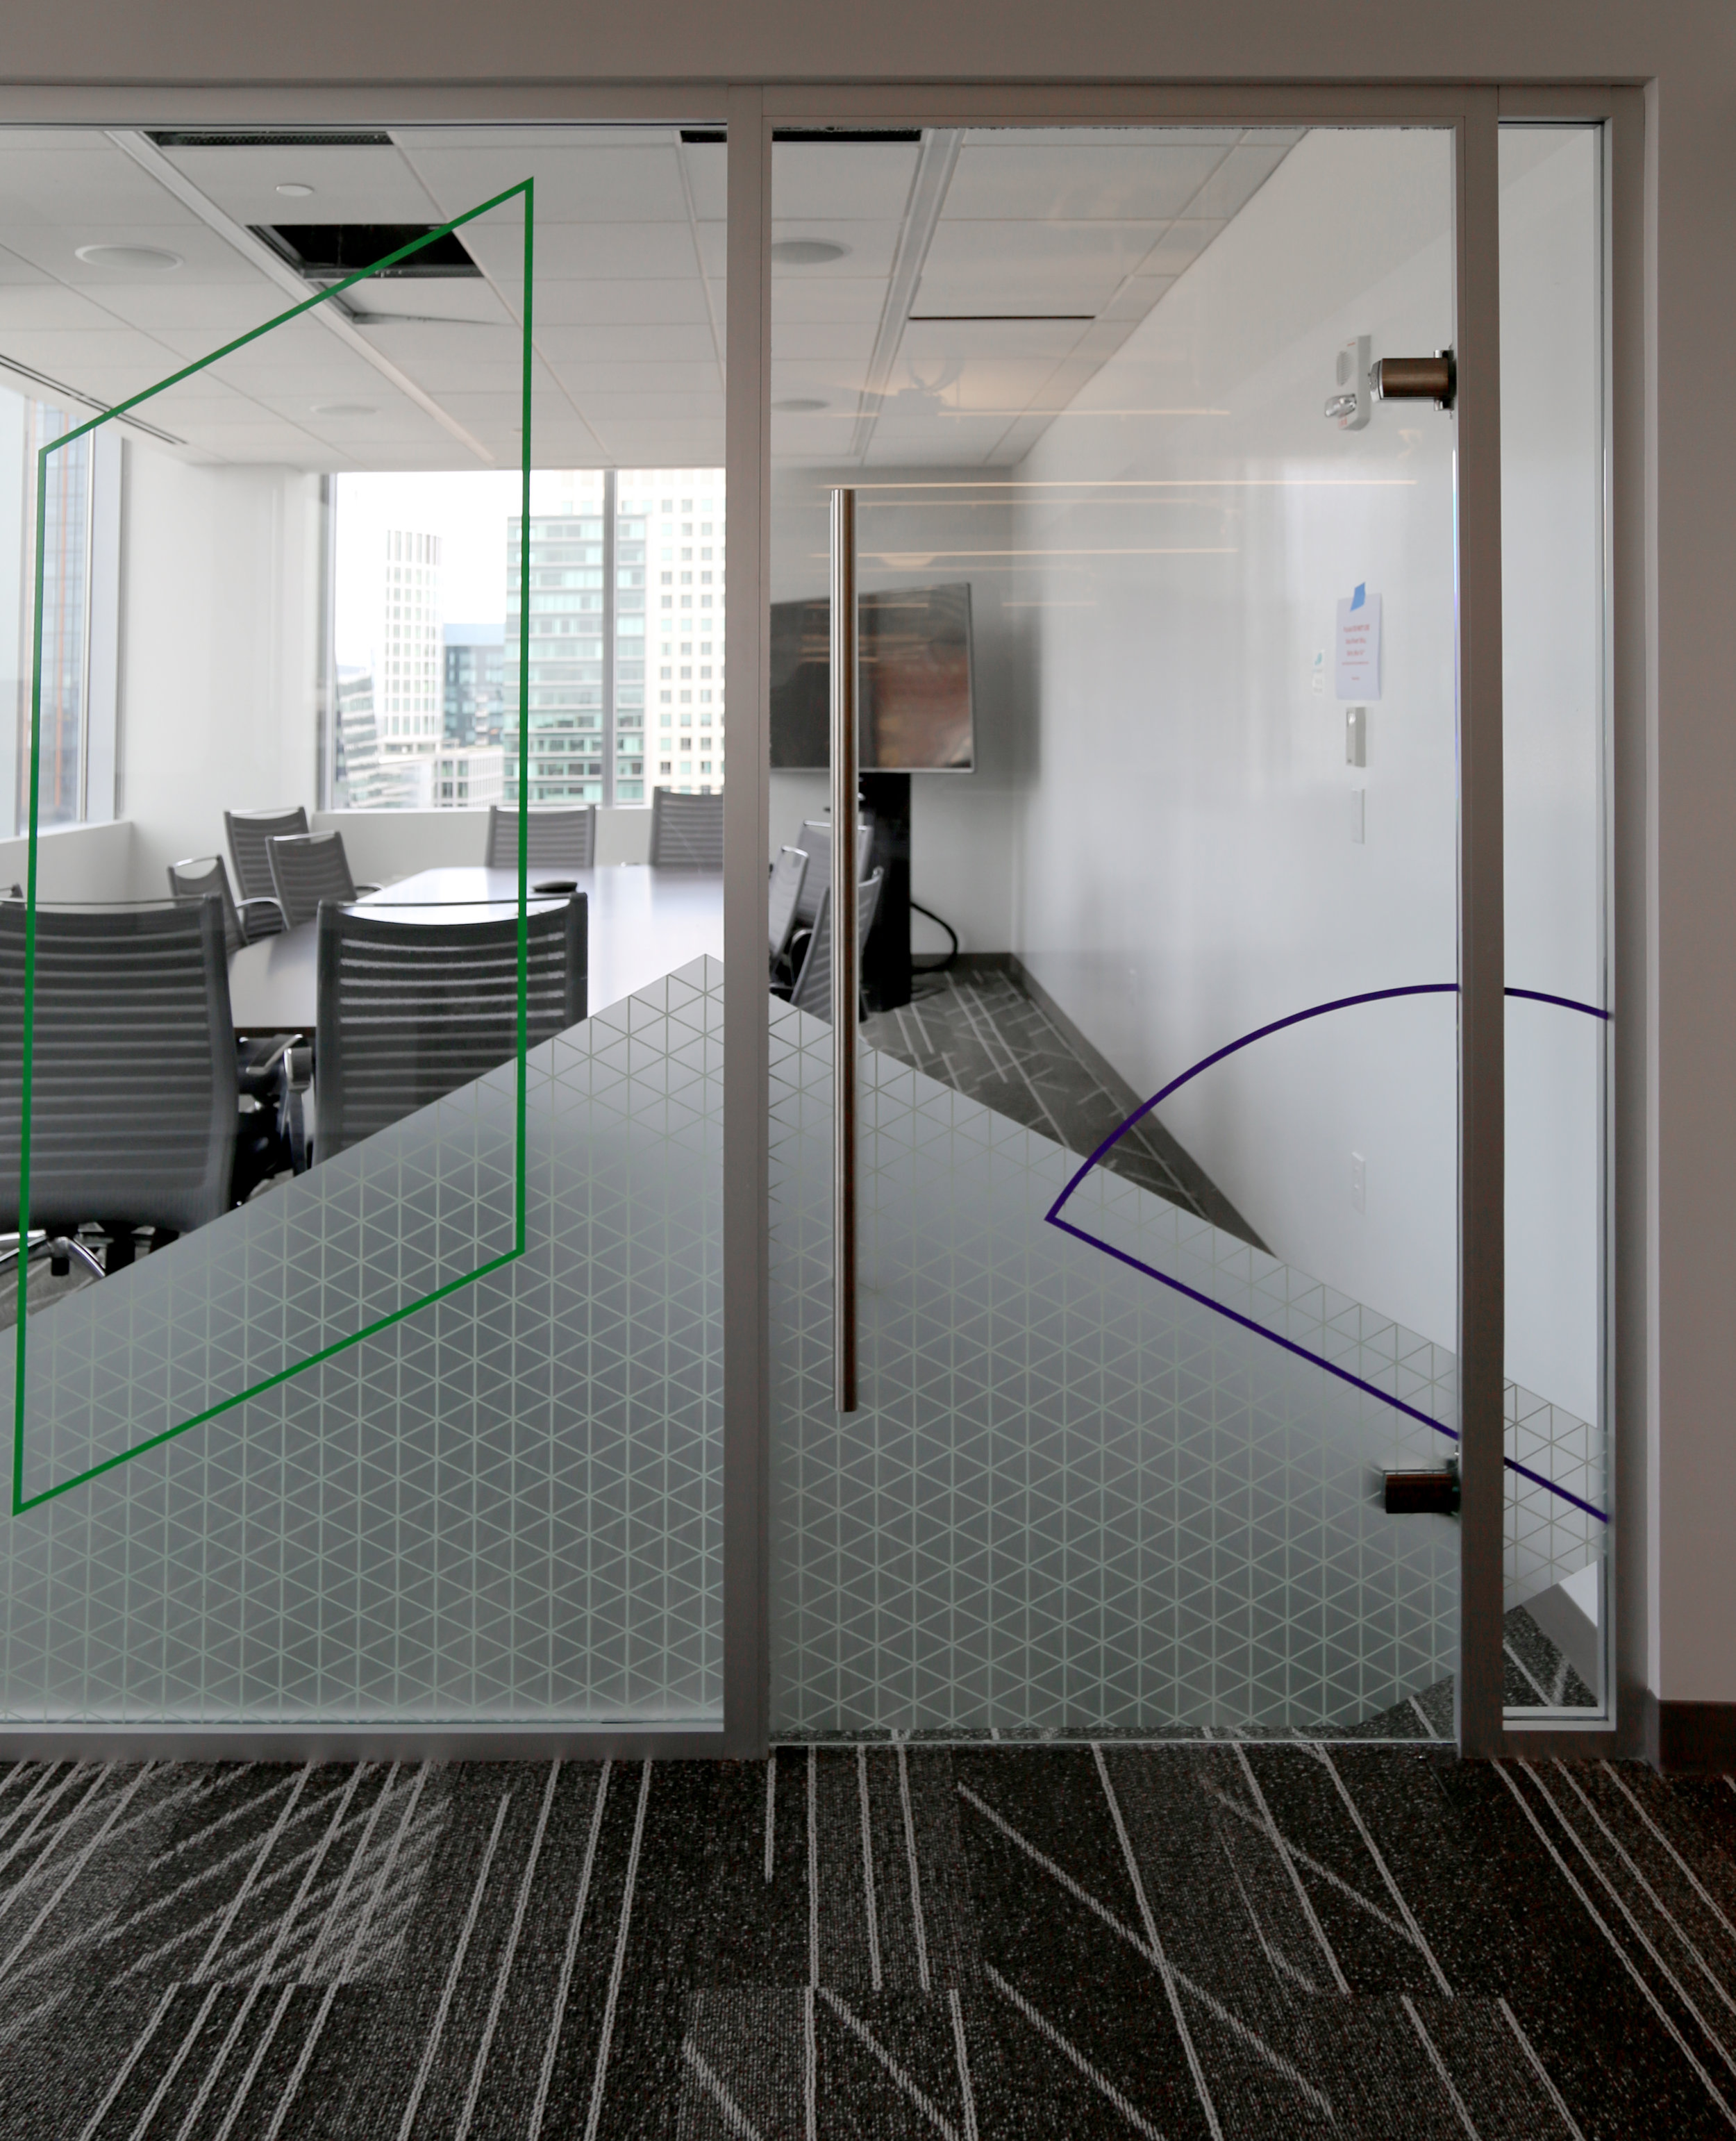 Litespace Frameless Glass Swing Door Hydraulic Hinges - Spaceworks AI.jpg